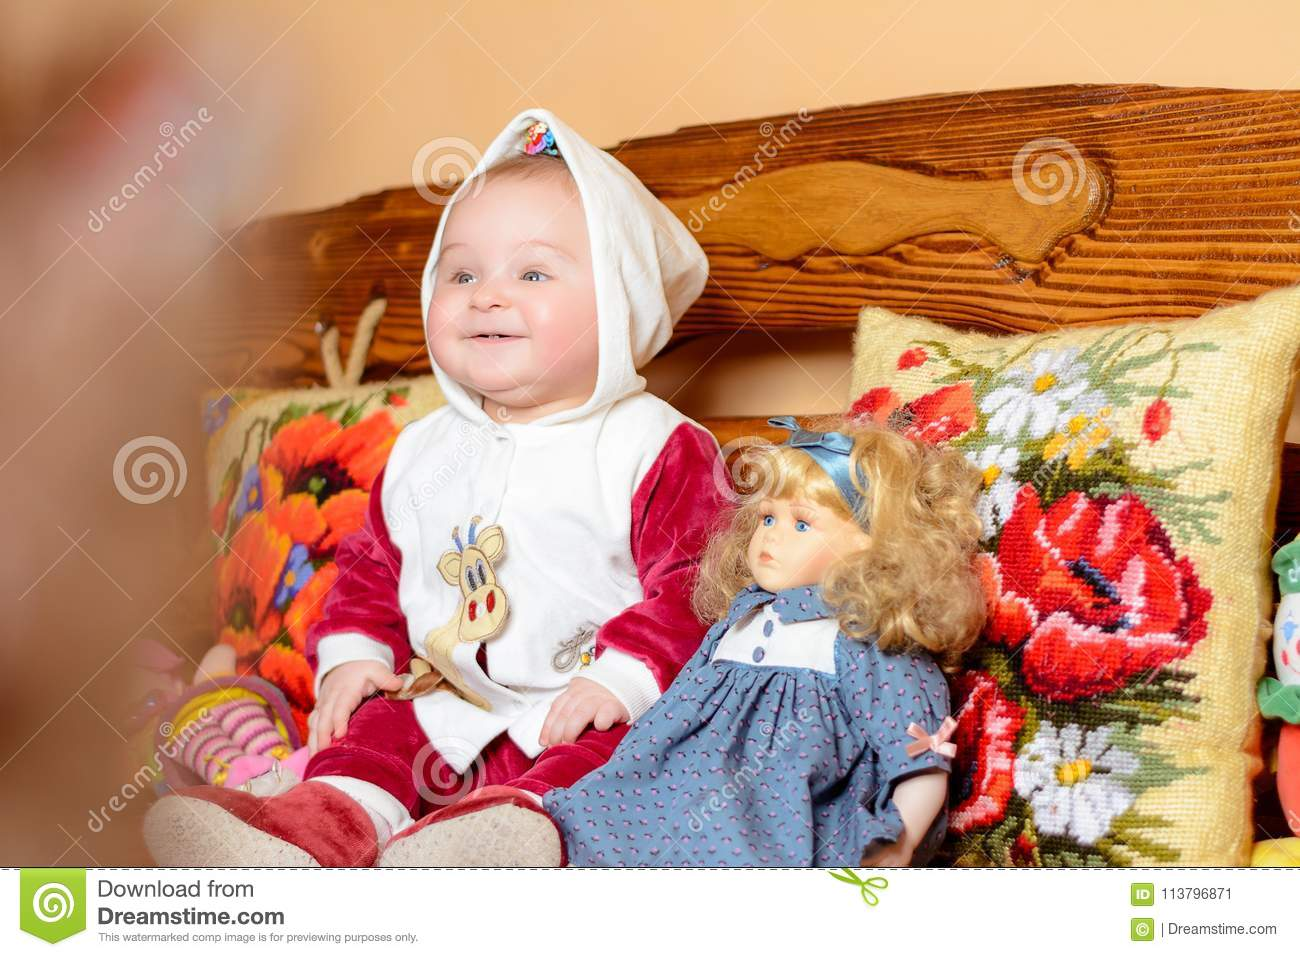 A small child in a shawl sitting on a sofa with embroidered pillows